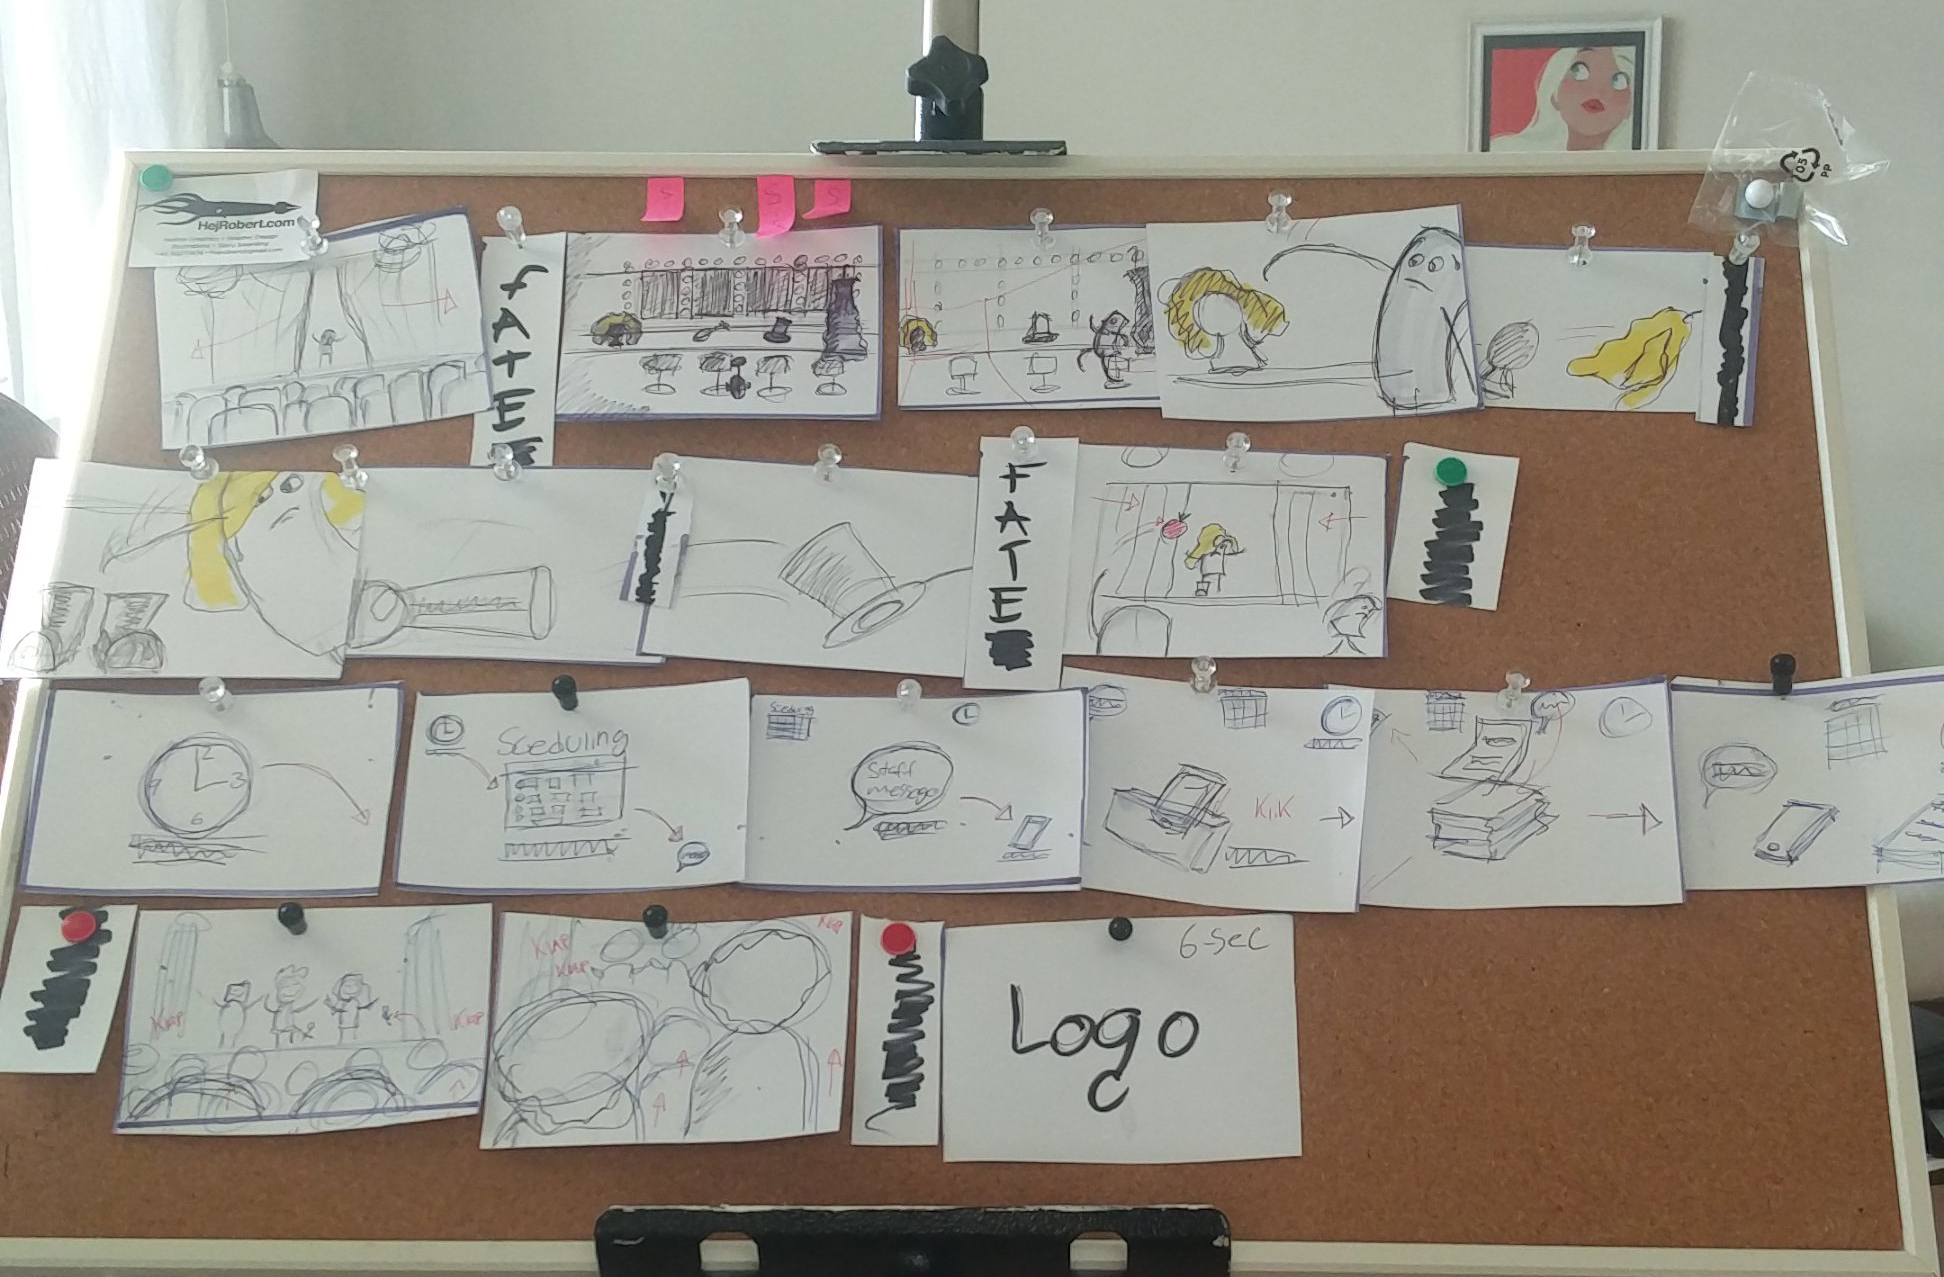 Storyboard of my planday video